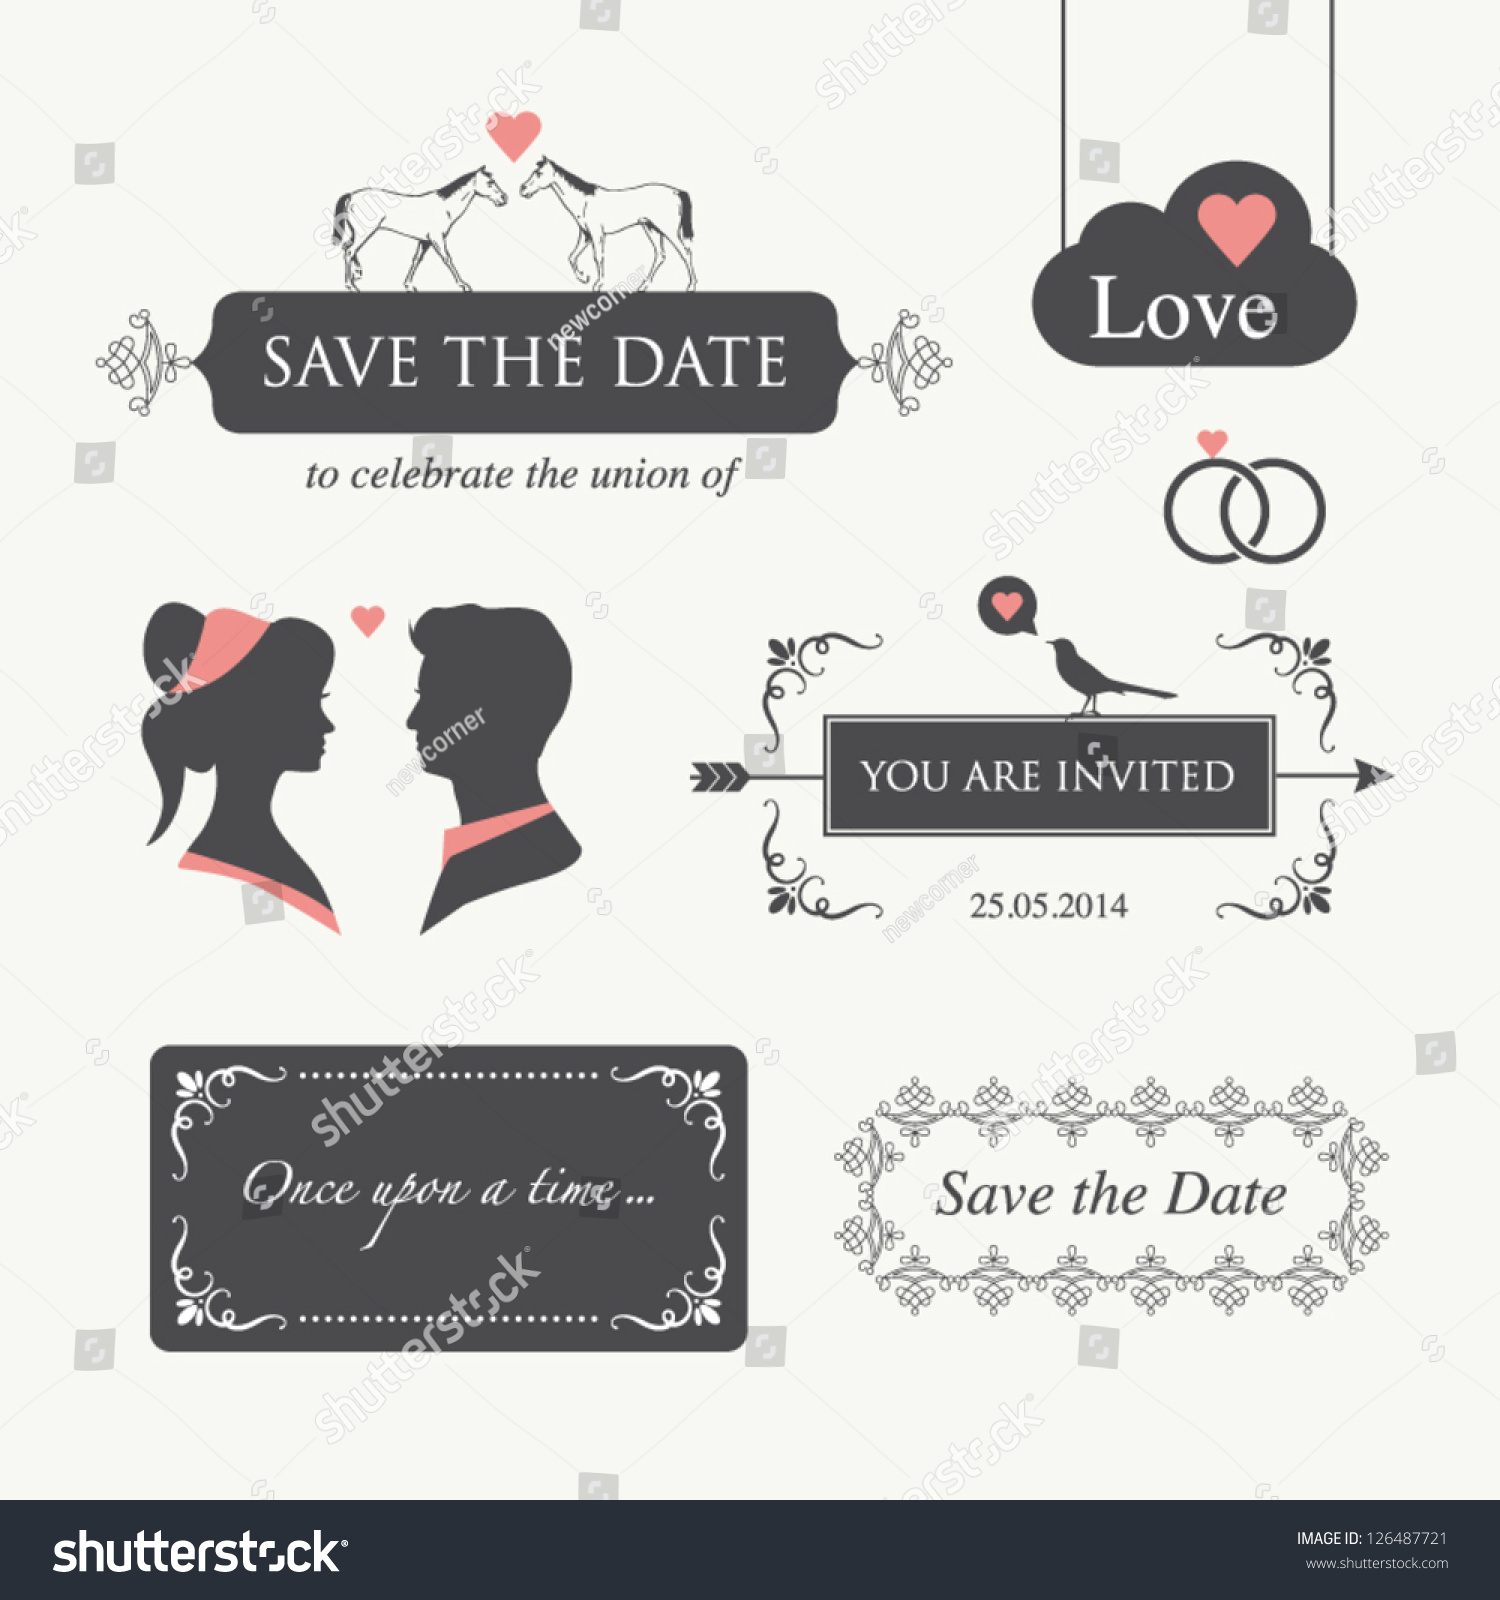 Wedding ornaments 2014 - Set Of Wedding Design Illustration Elements And Ornaments Editable Wedding Invitation Card Valentines